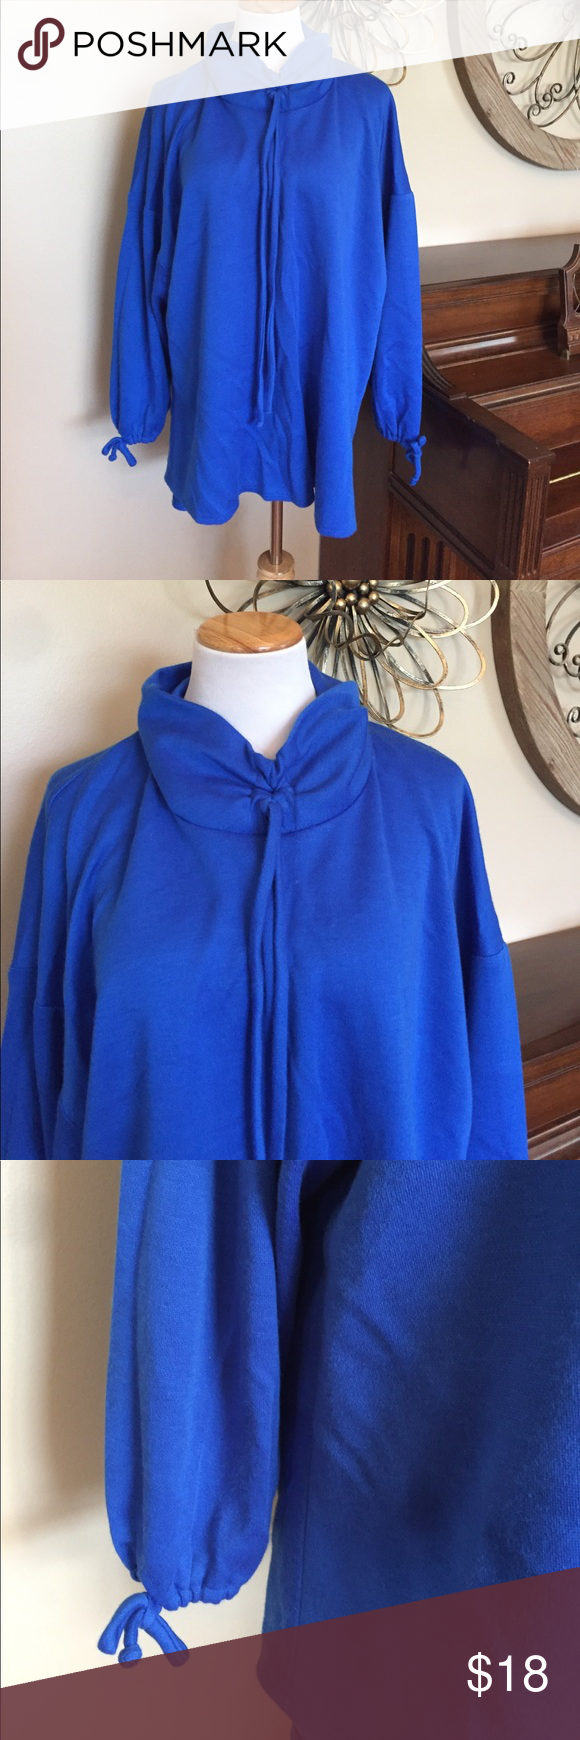 Fresh Ideas CA Size 24W Cowl Neck Royal Blue Top Excellent Condition! Cute Cowl Neck! 90% Acrylic 10% Polyester- Made in the USA 🇺🇸 Fresh Ideas California Tops